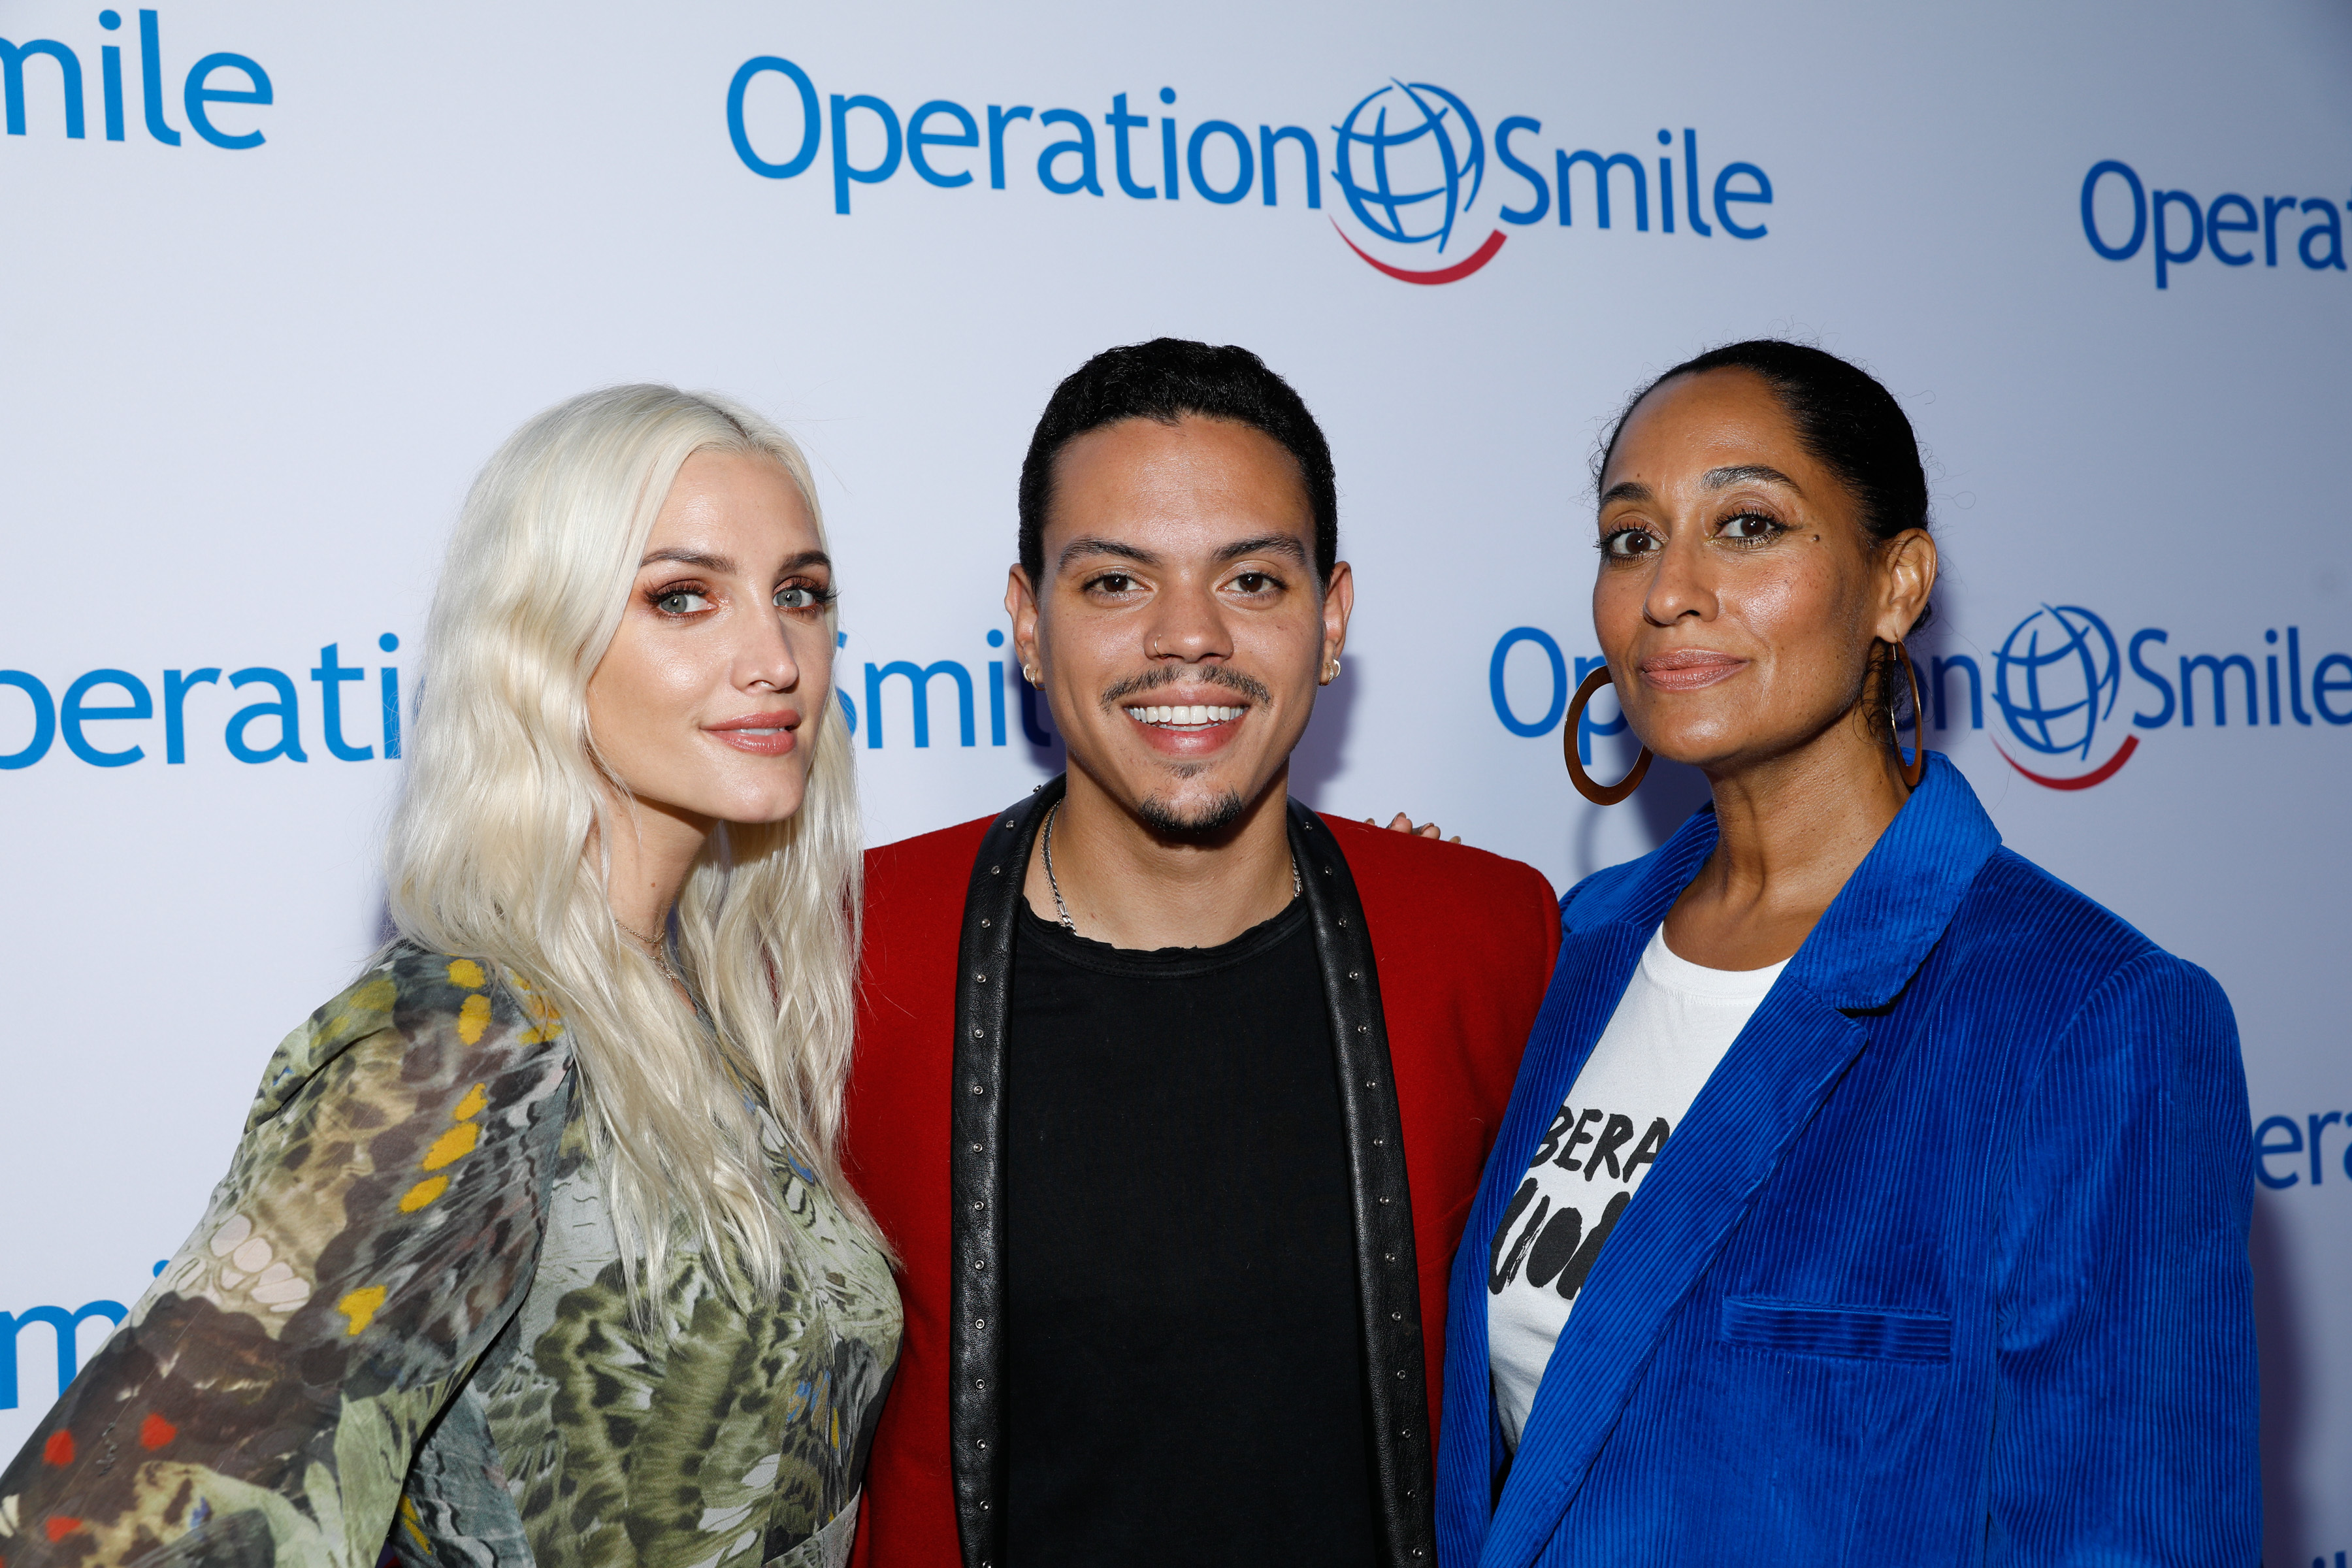 Ashlee Simpson, husband Evan Ross and his sister, Tracee Ellis Ross, attend Operation Smile's Los Angeles Smile Gala at The Broad in Santa Monica, California, on Sept. 9, 2017.